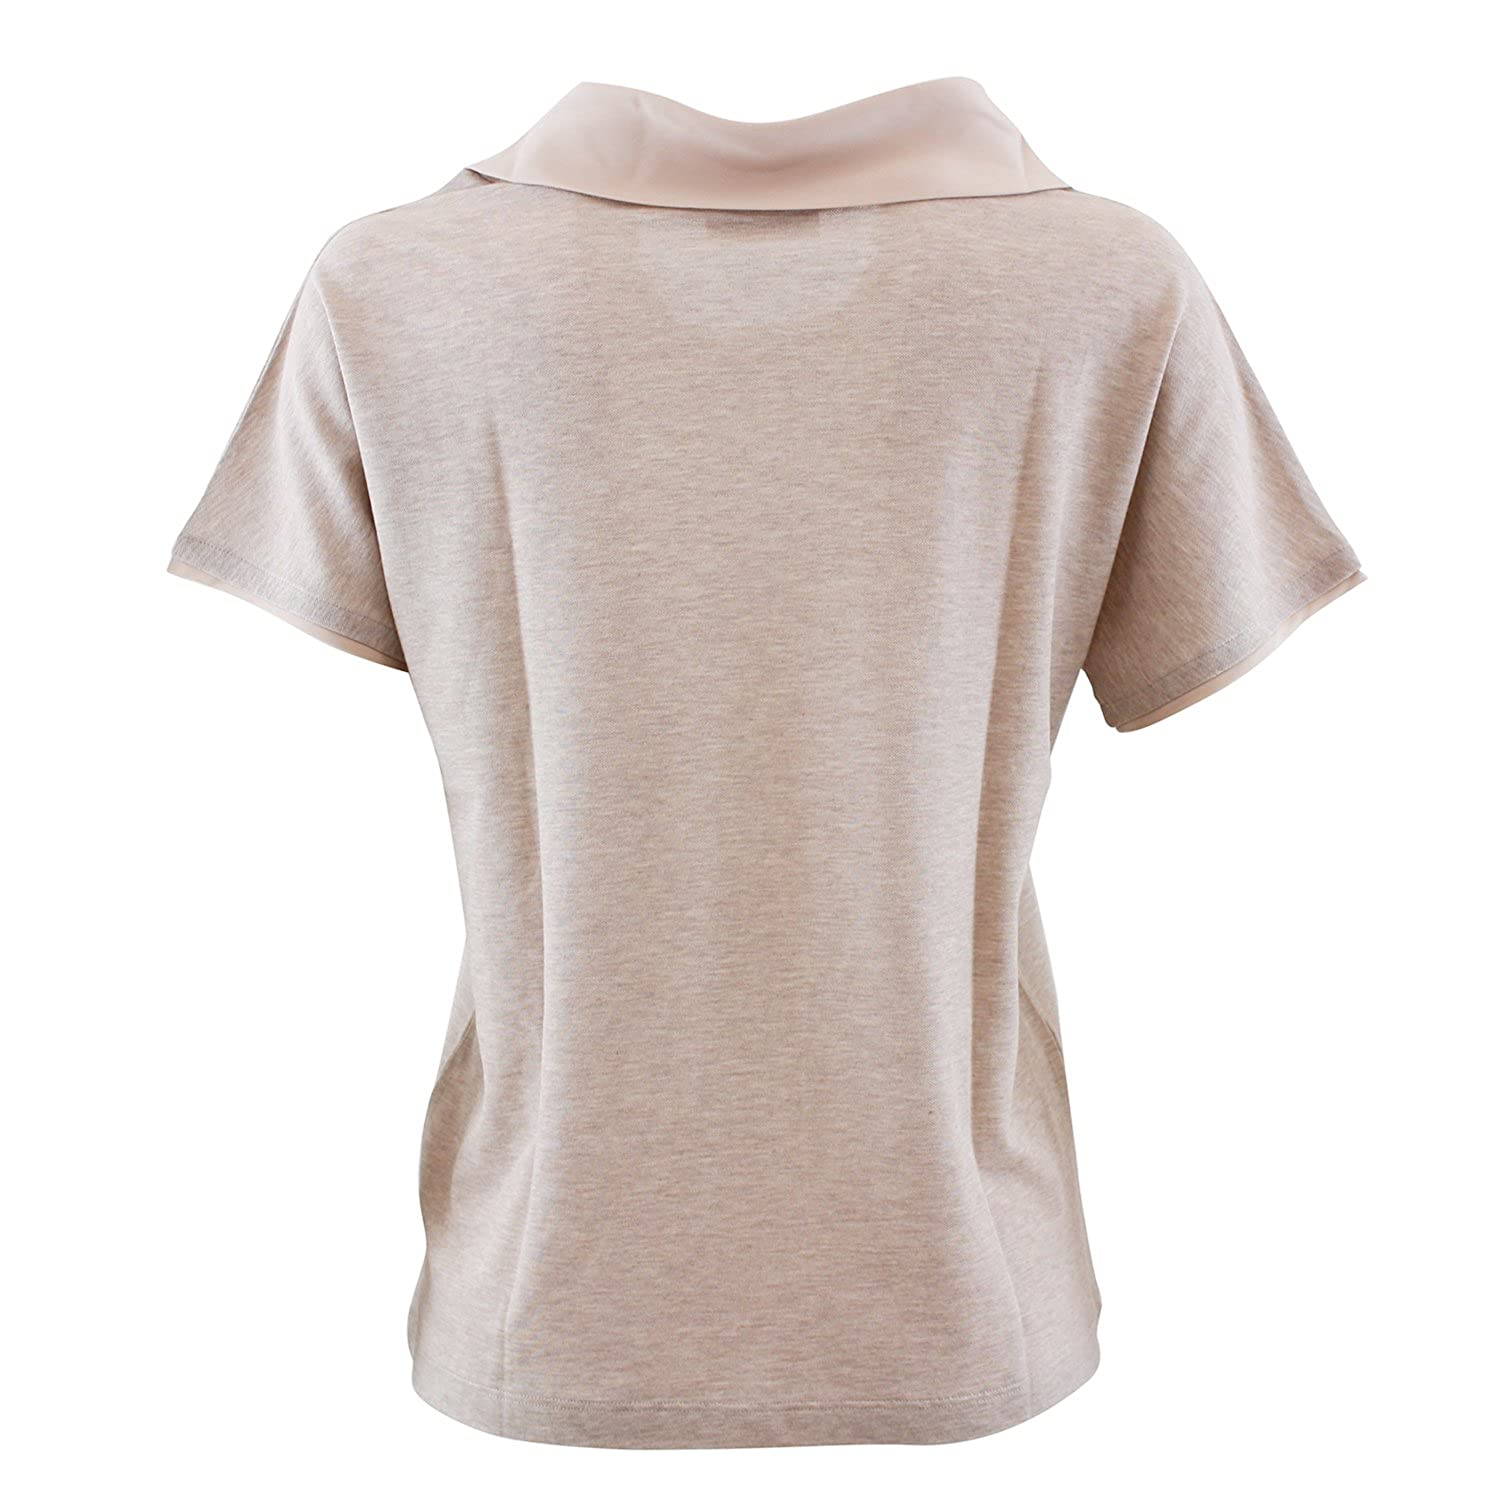 GranSasso 60259 81420802 Silk t-Shirt Woman